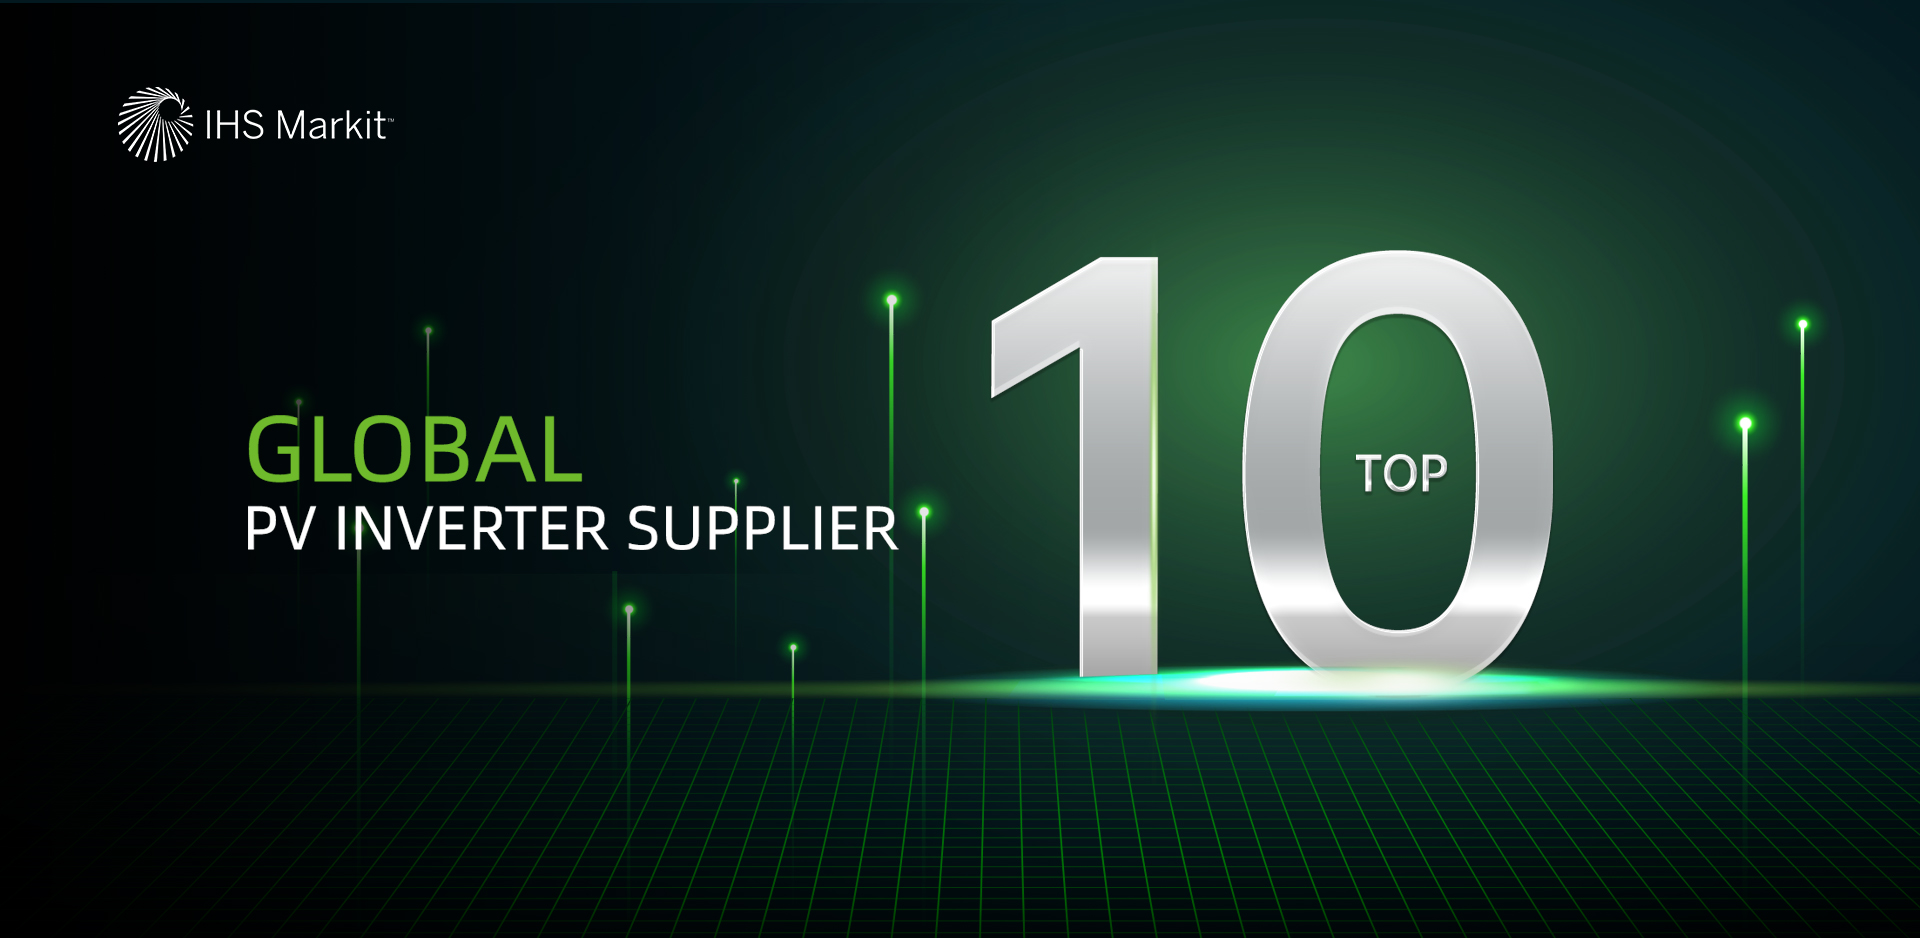 TOP 10 Global PV Inverter Supplier